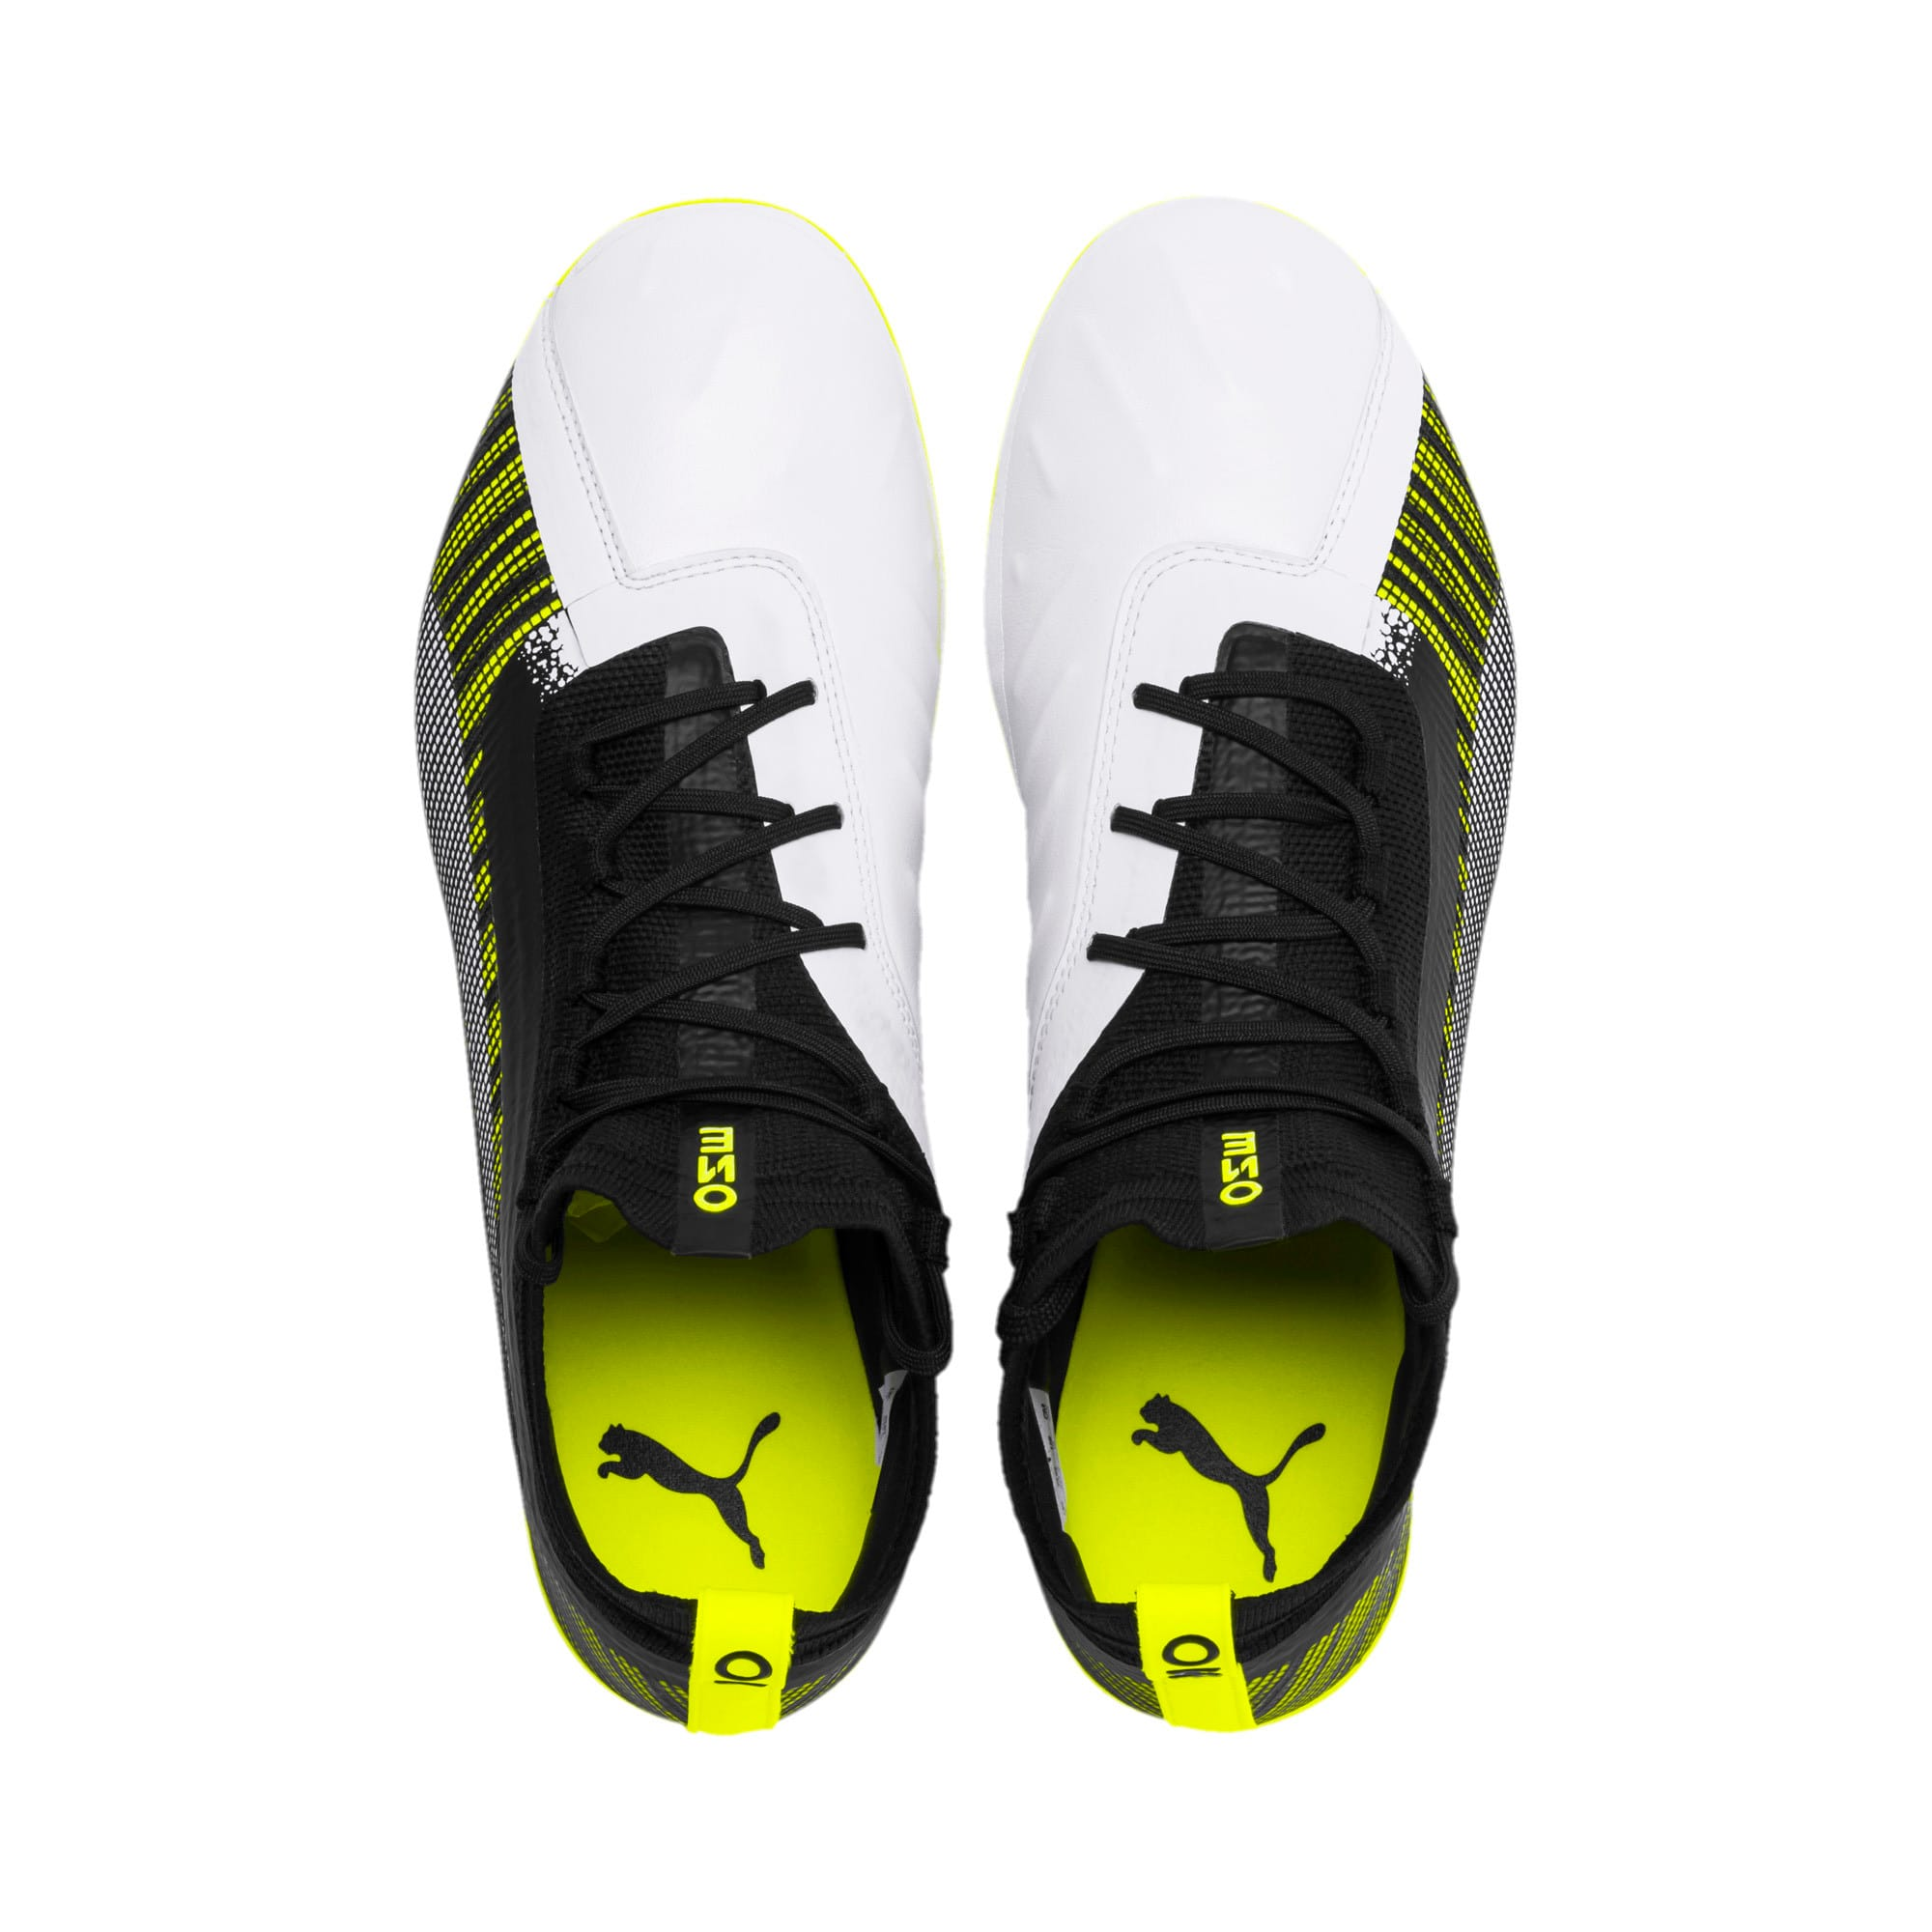 Thumbnail 7 of プーマ ワン 5.1 HG サッカースパイク, White-Black-Yellow Alert, medium-JPN